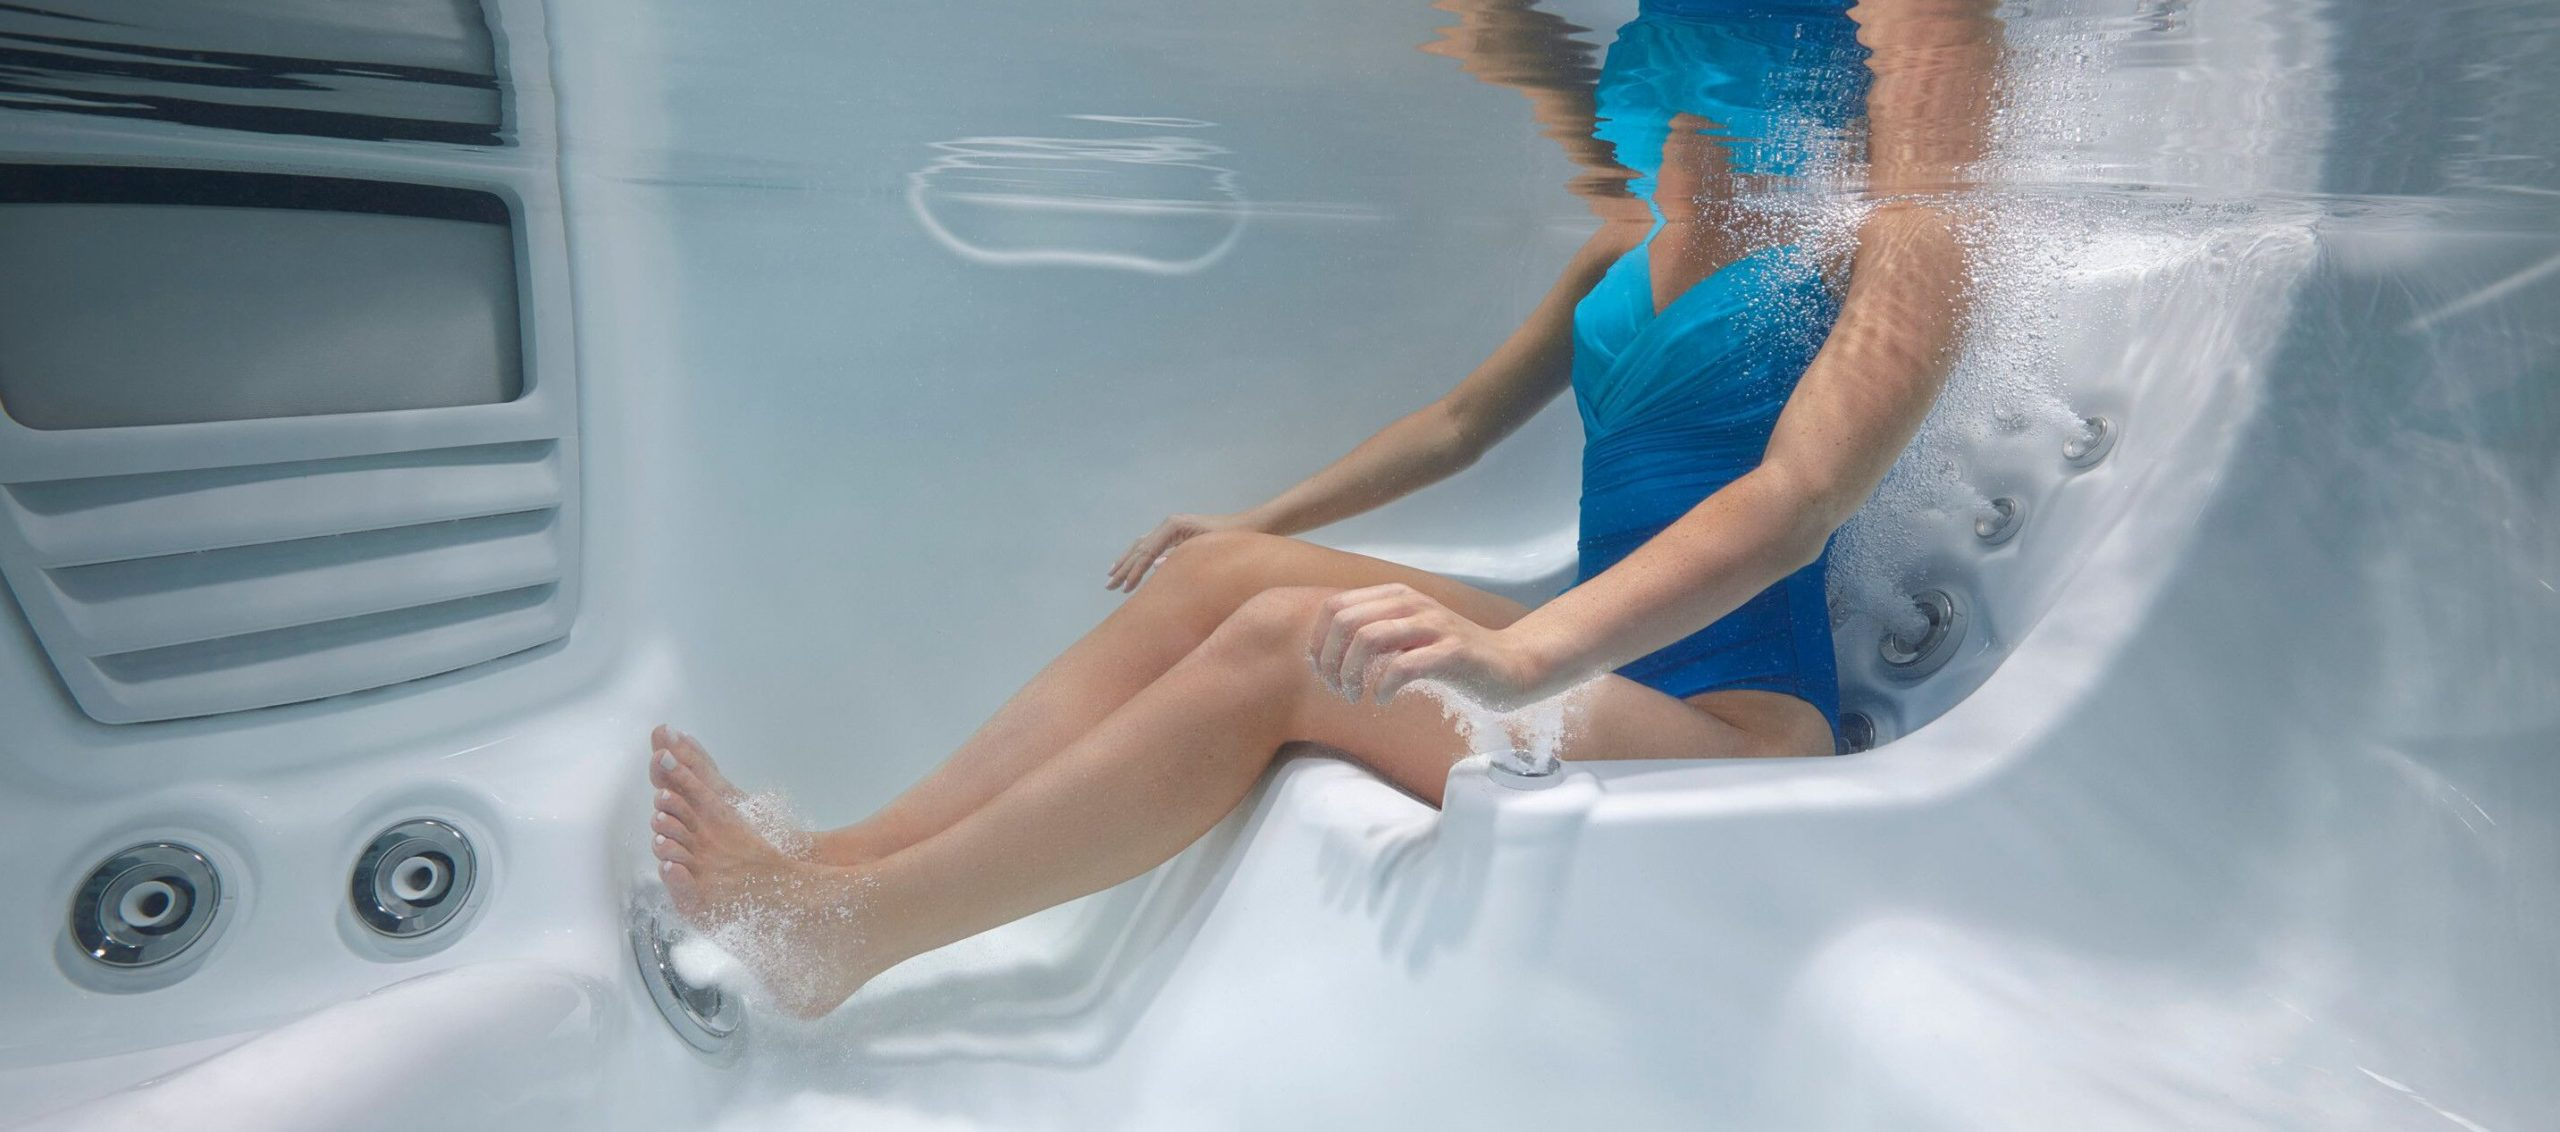 Follow these tips to keep your spa in tip-top shape